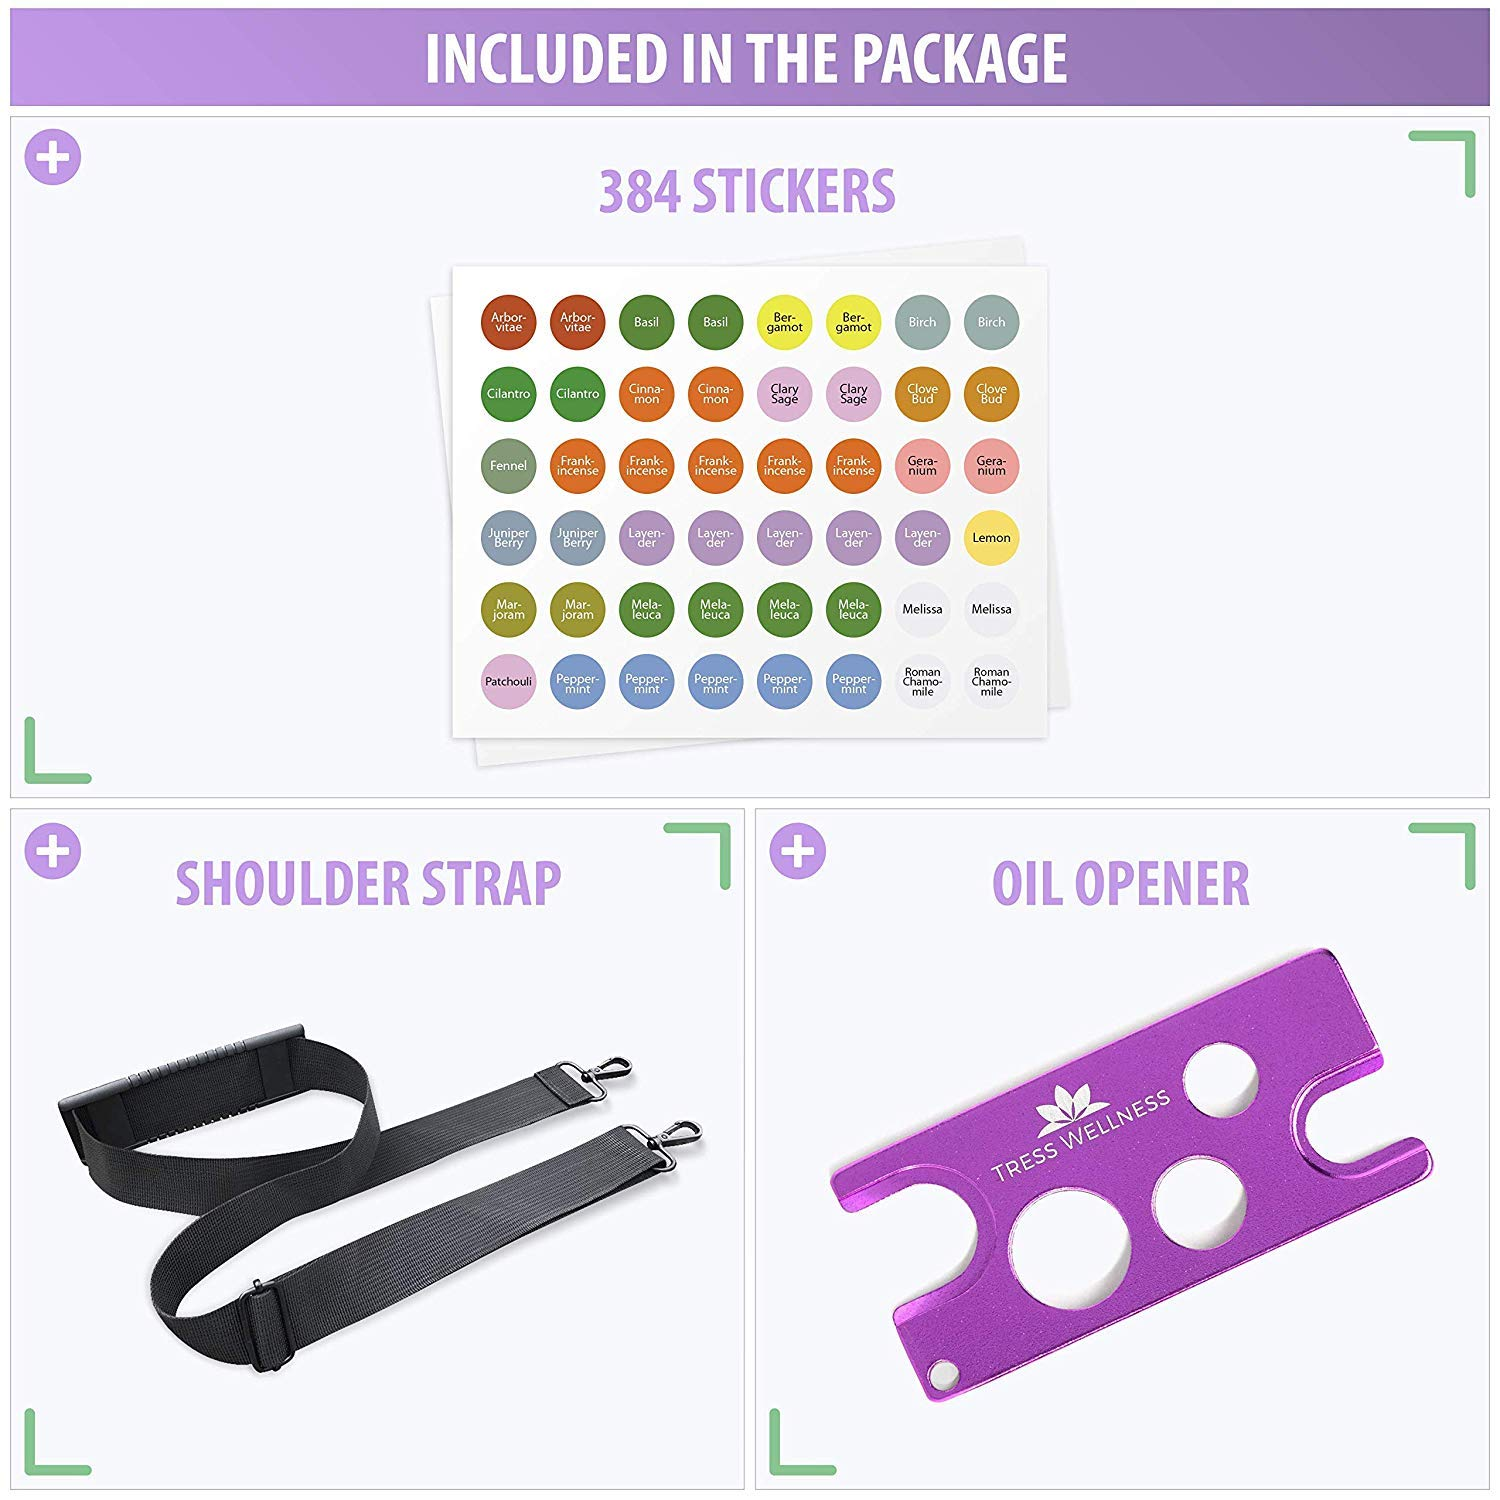 Essential Oil Storage MULTIPLE SIZES  Oil Opener  Stickers  Holds Young Living  Doterra bottles